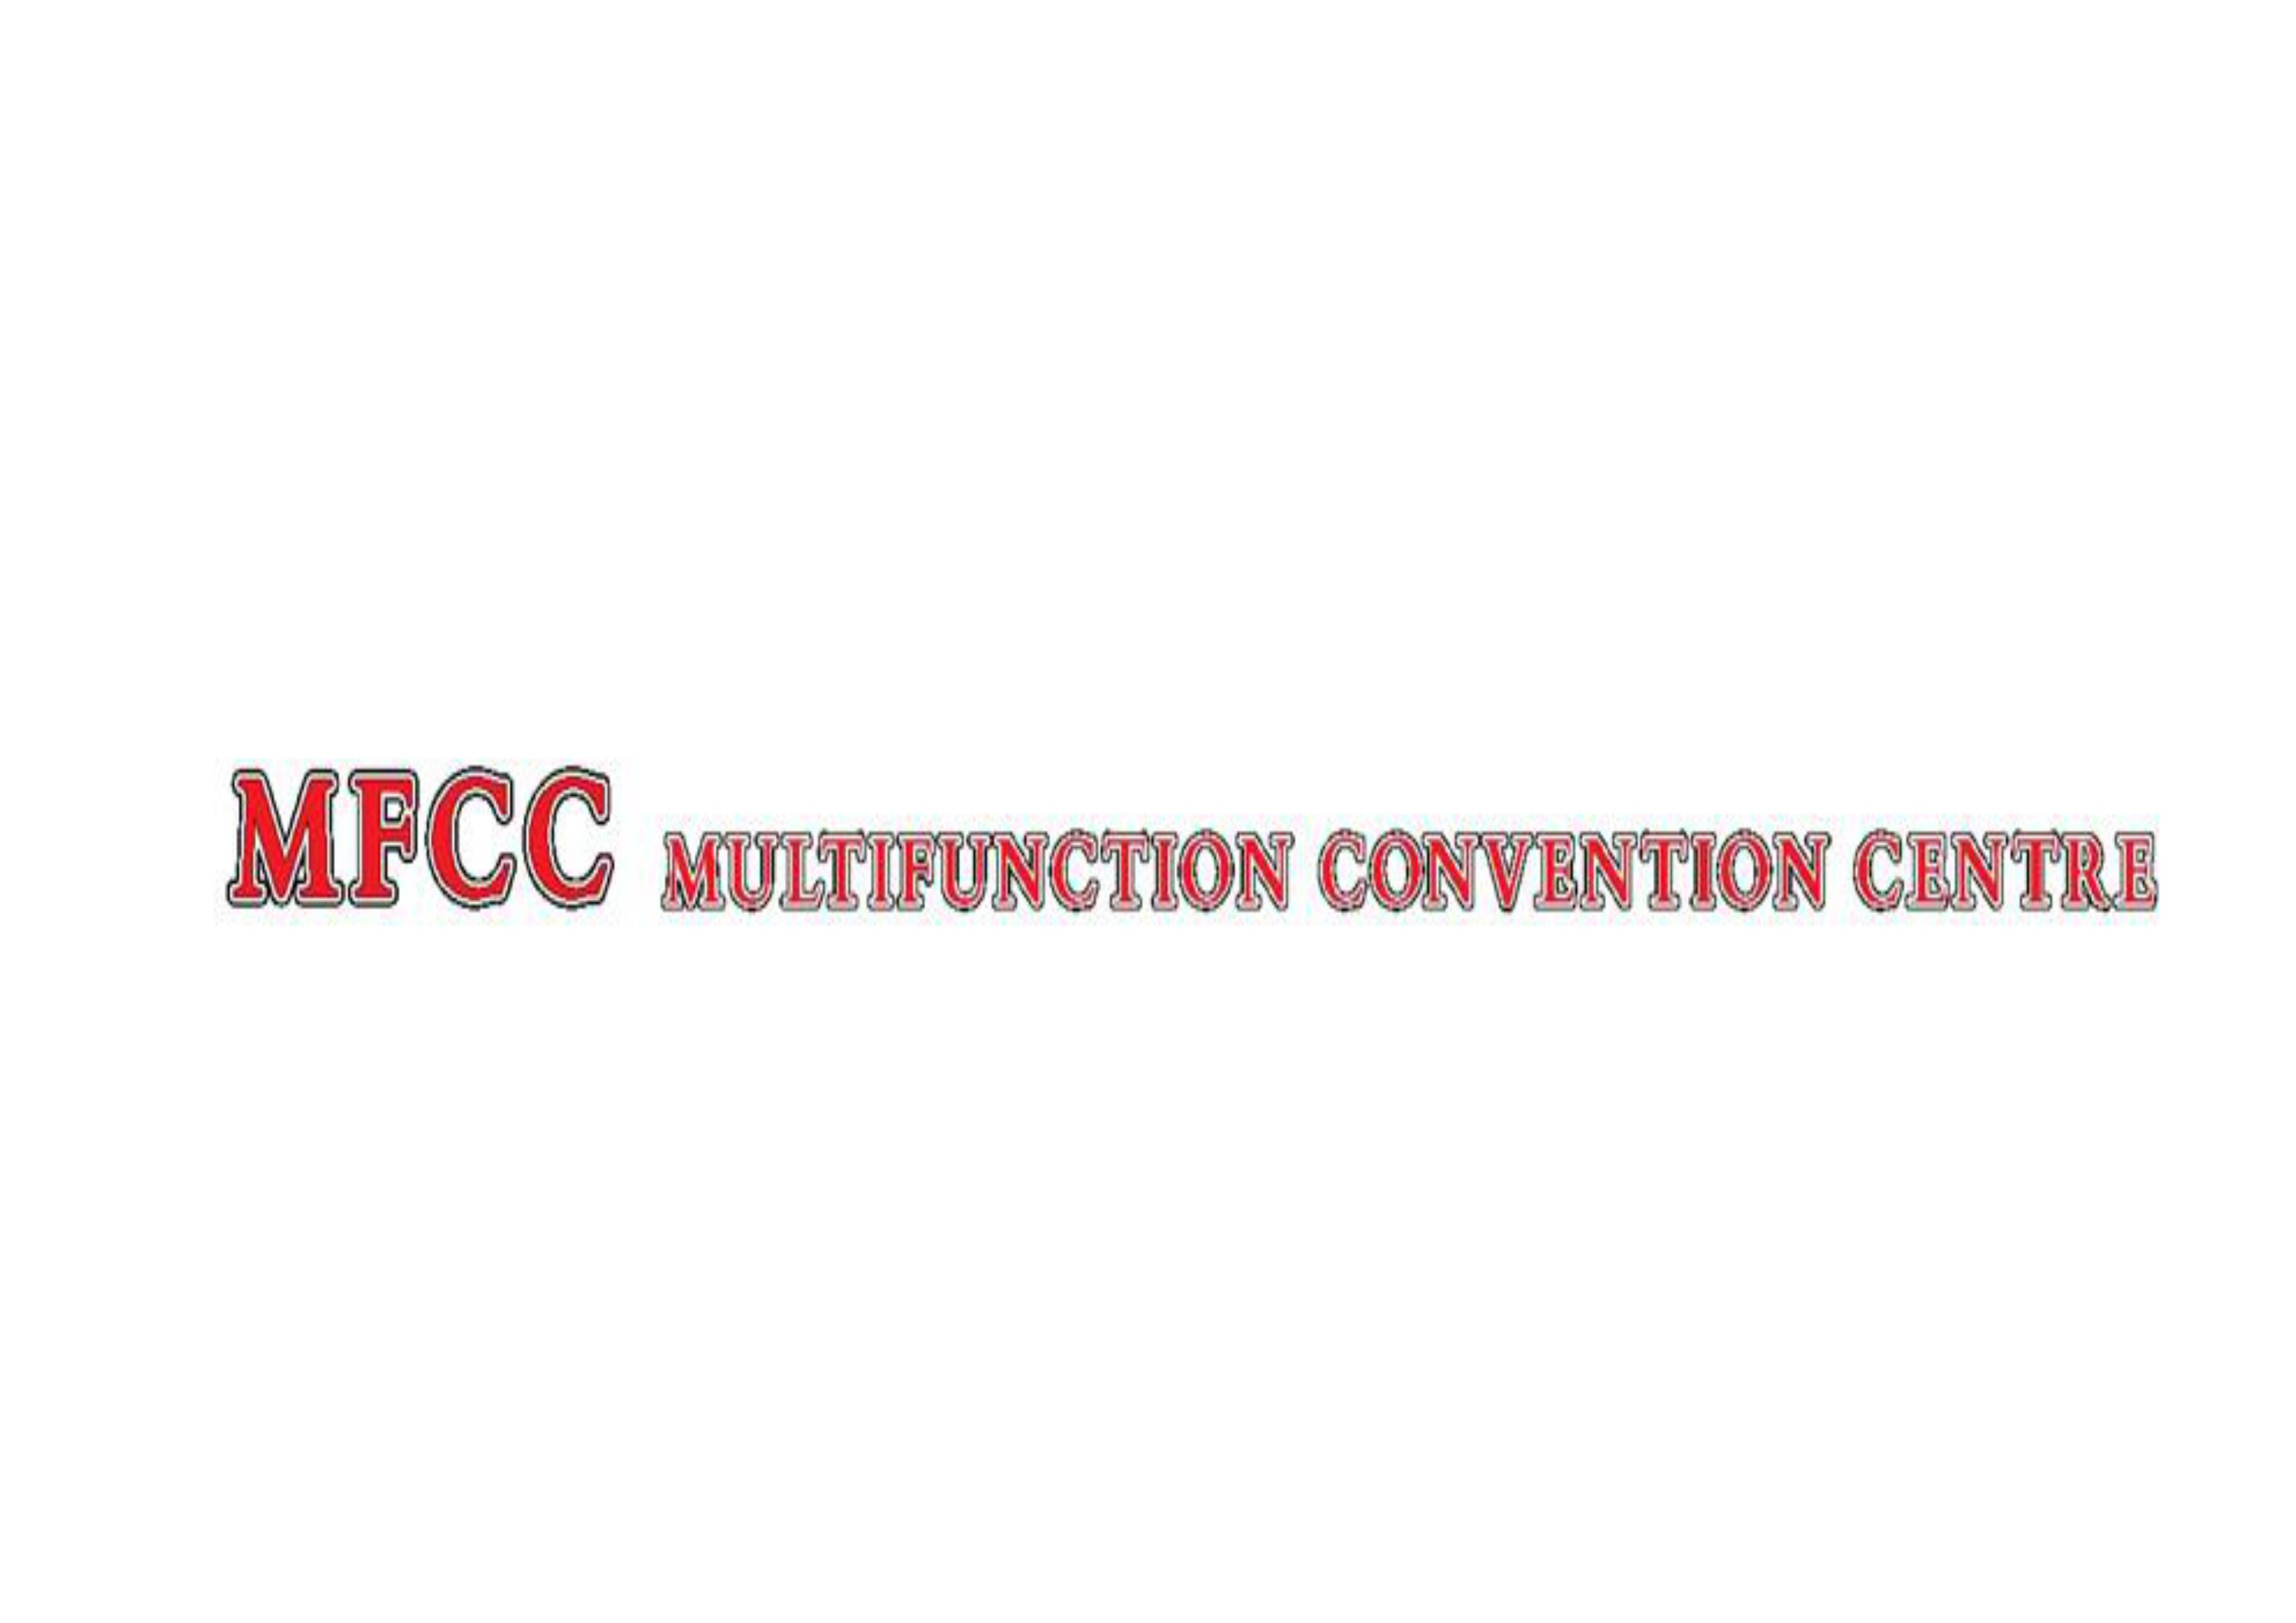 MFCC Multifunction Convention Center